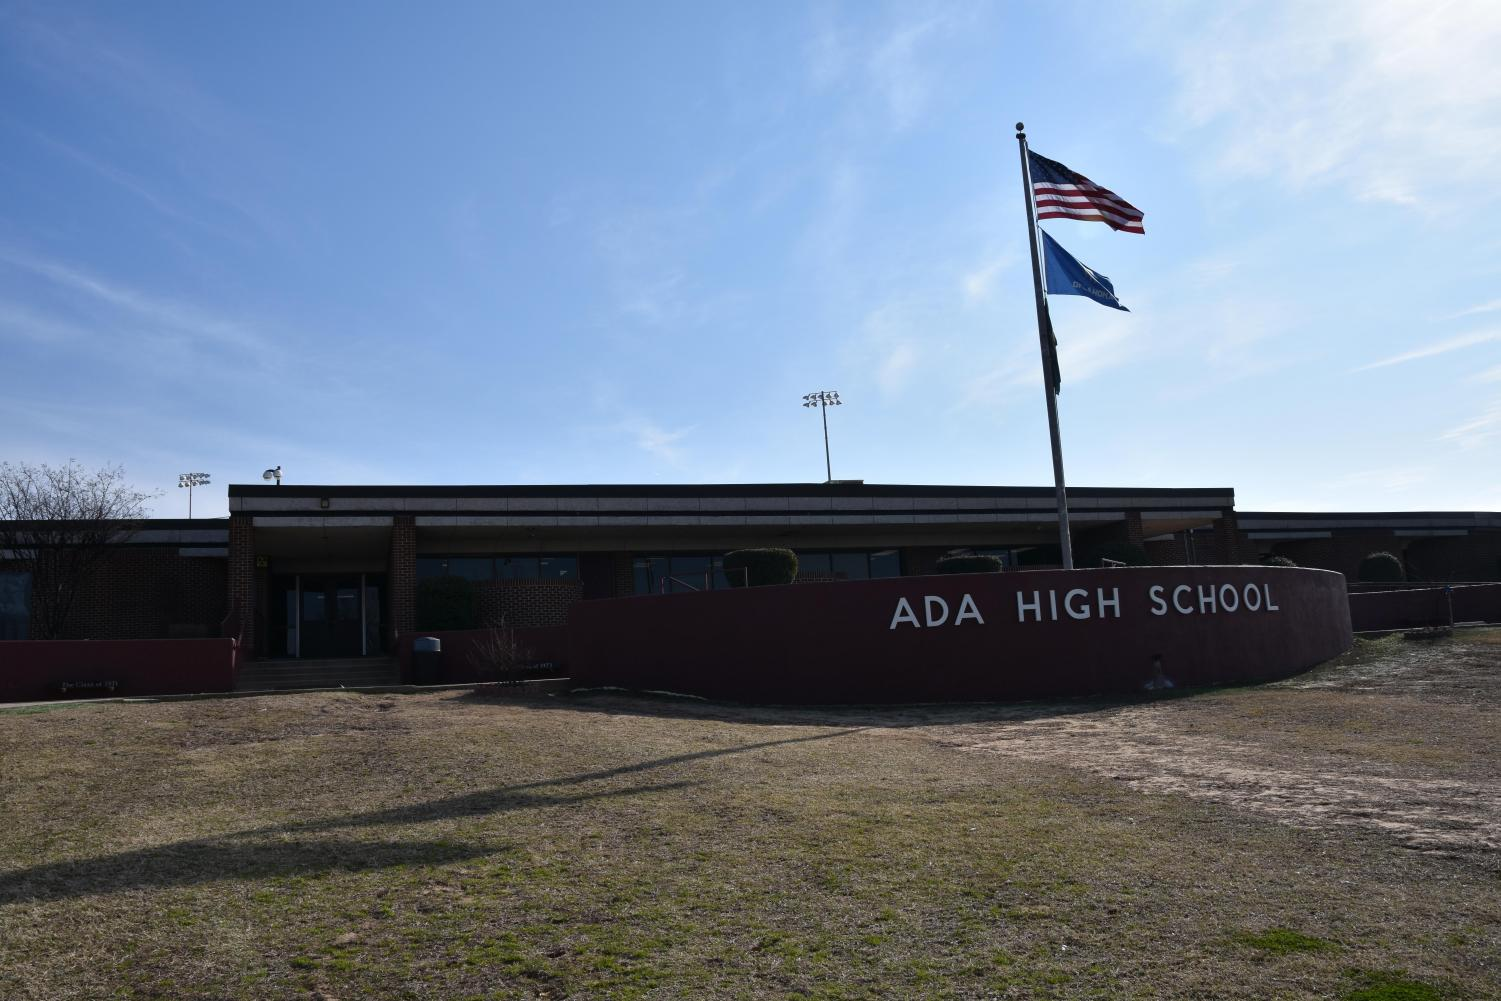 Students will be allowed to wear their Native American tribal honor cords during the Ada High School commencement ceremony on Thurs., May 16th.